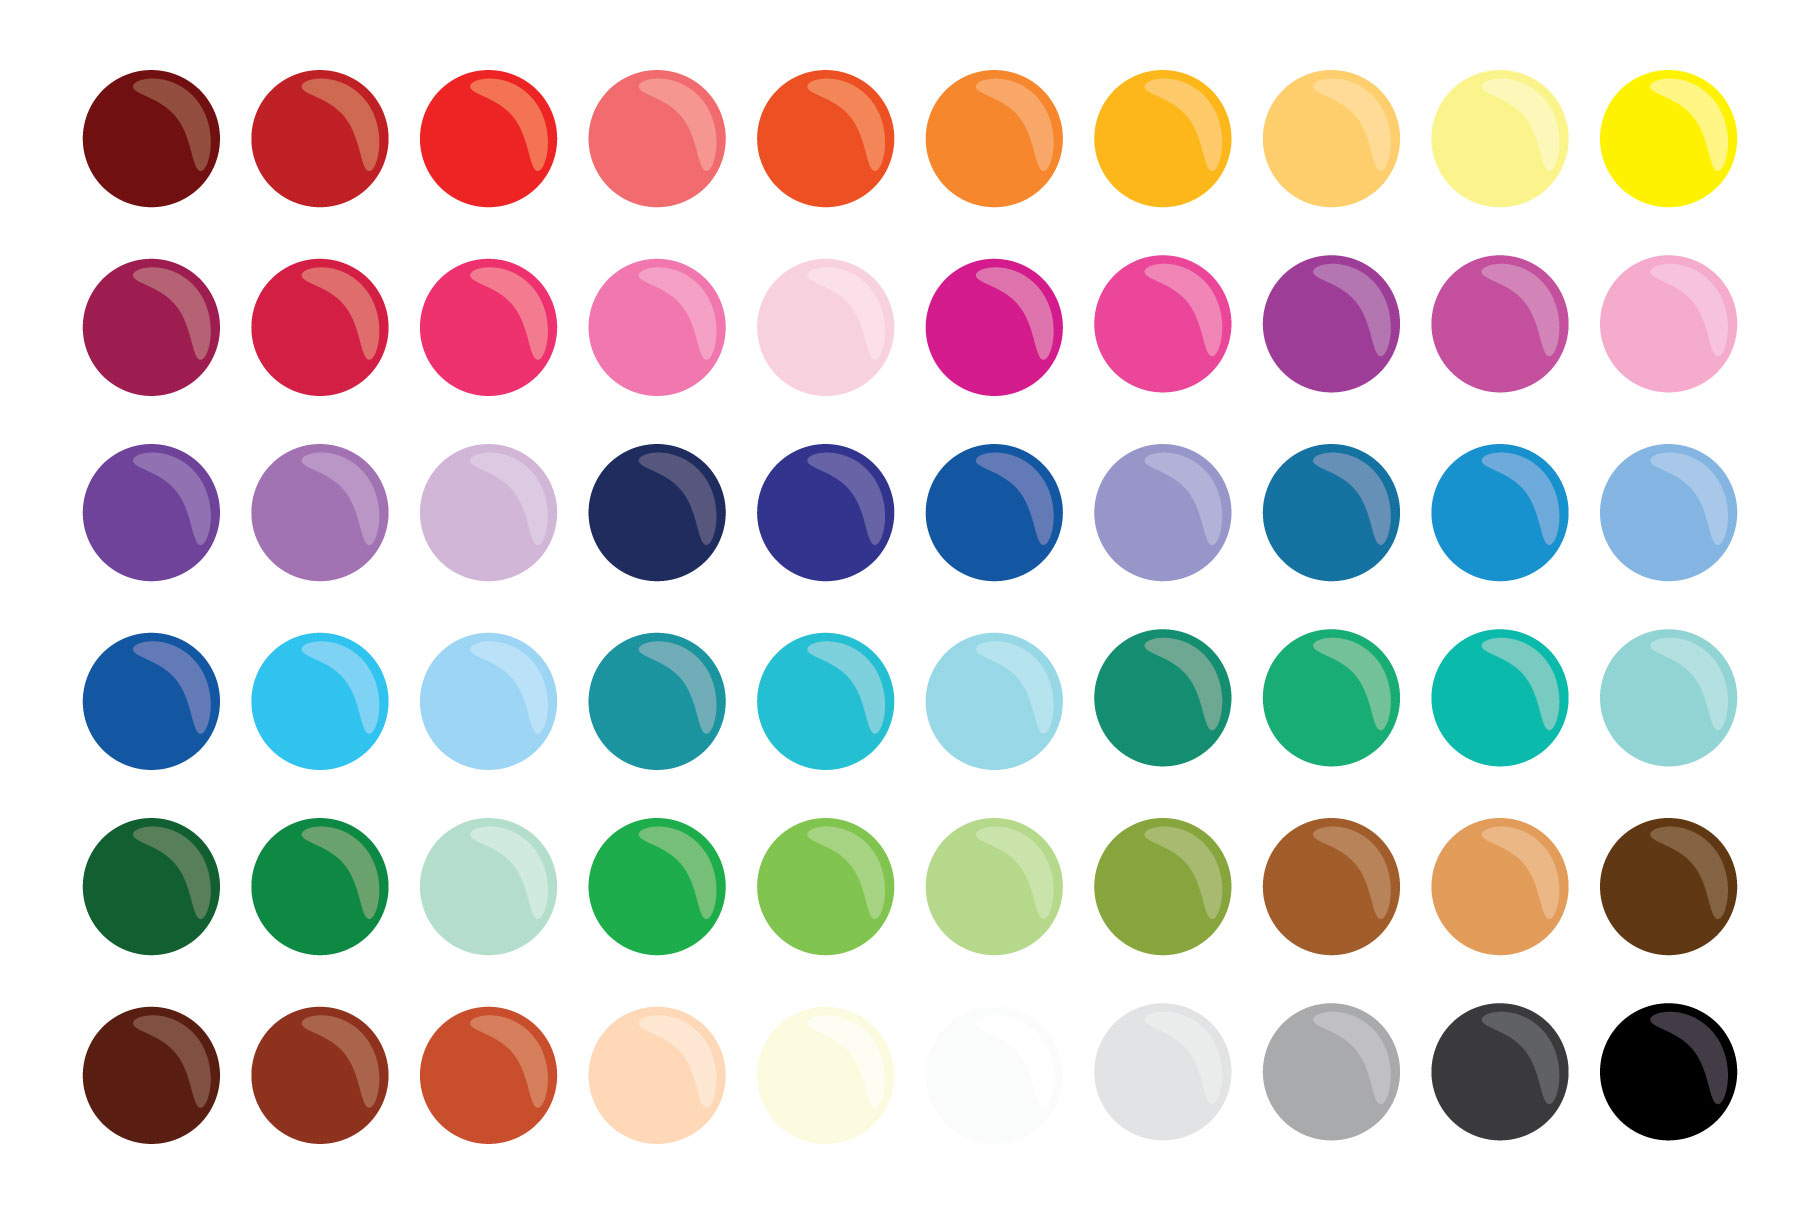 Paint Brush & Palette Graphic Set example image 7